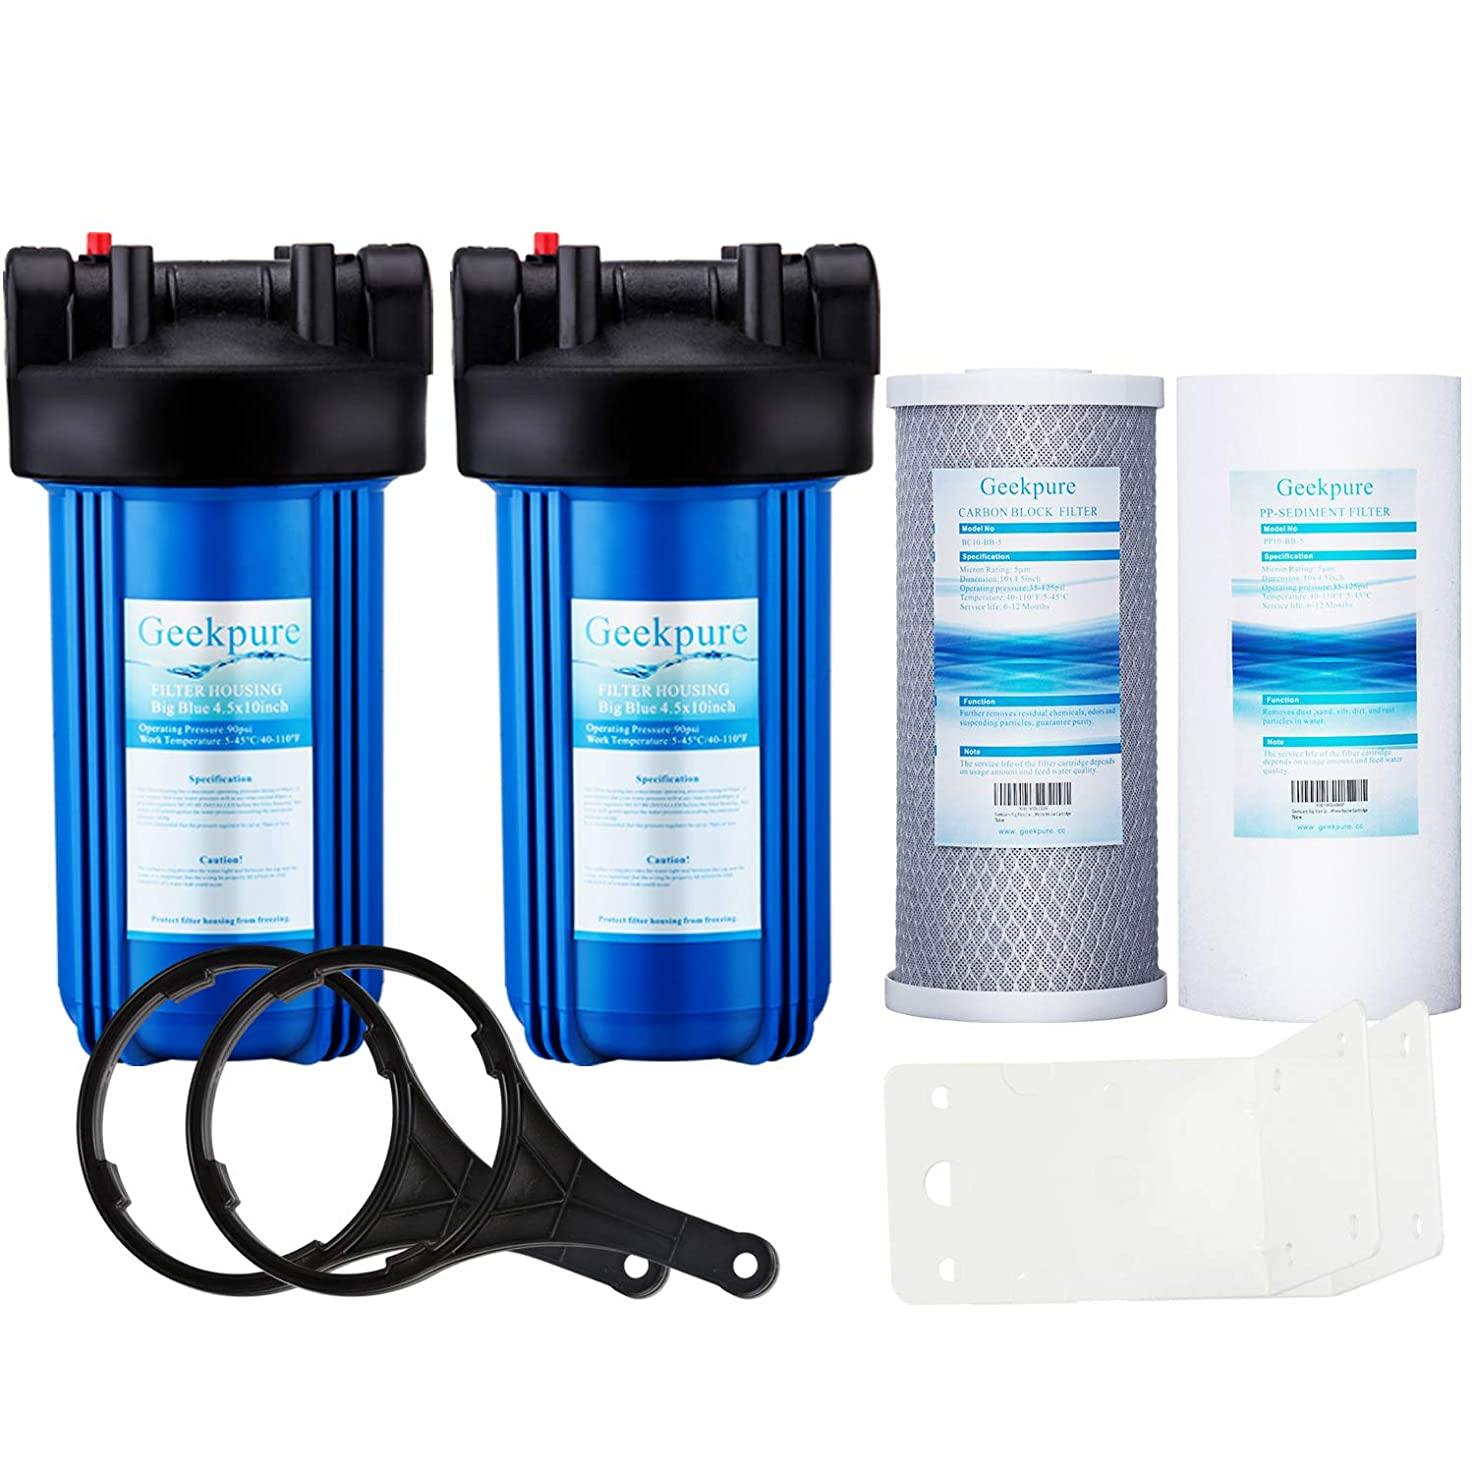 Geekpure 2 Stage Whole House Water Filter System w/ 10-Inch Big Blue Housing-with 4.5